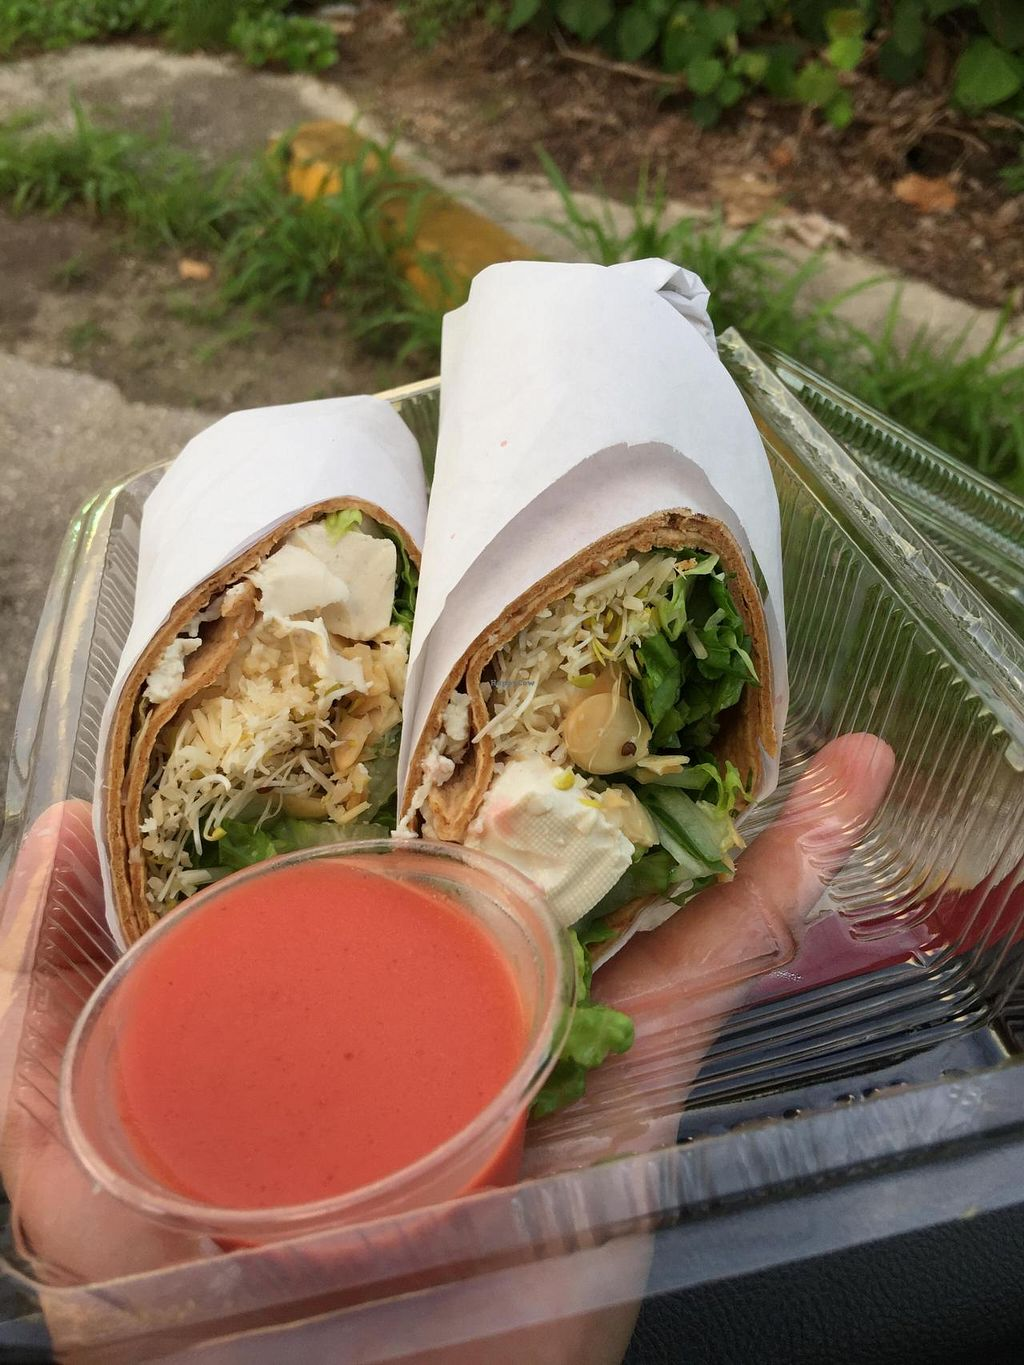 """Photo of CLOSED: The Urban Fork  by <a href=""""/members/profile/JoannaBanana47"""">JoannaBanana47</a> <br/>Tofu salad wrap! Sub cheese to make it vegan! <br/> July 19, 2015  - <a href='/contact/abuse/image/60712/109951'>Report</a>"""